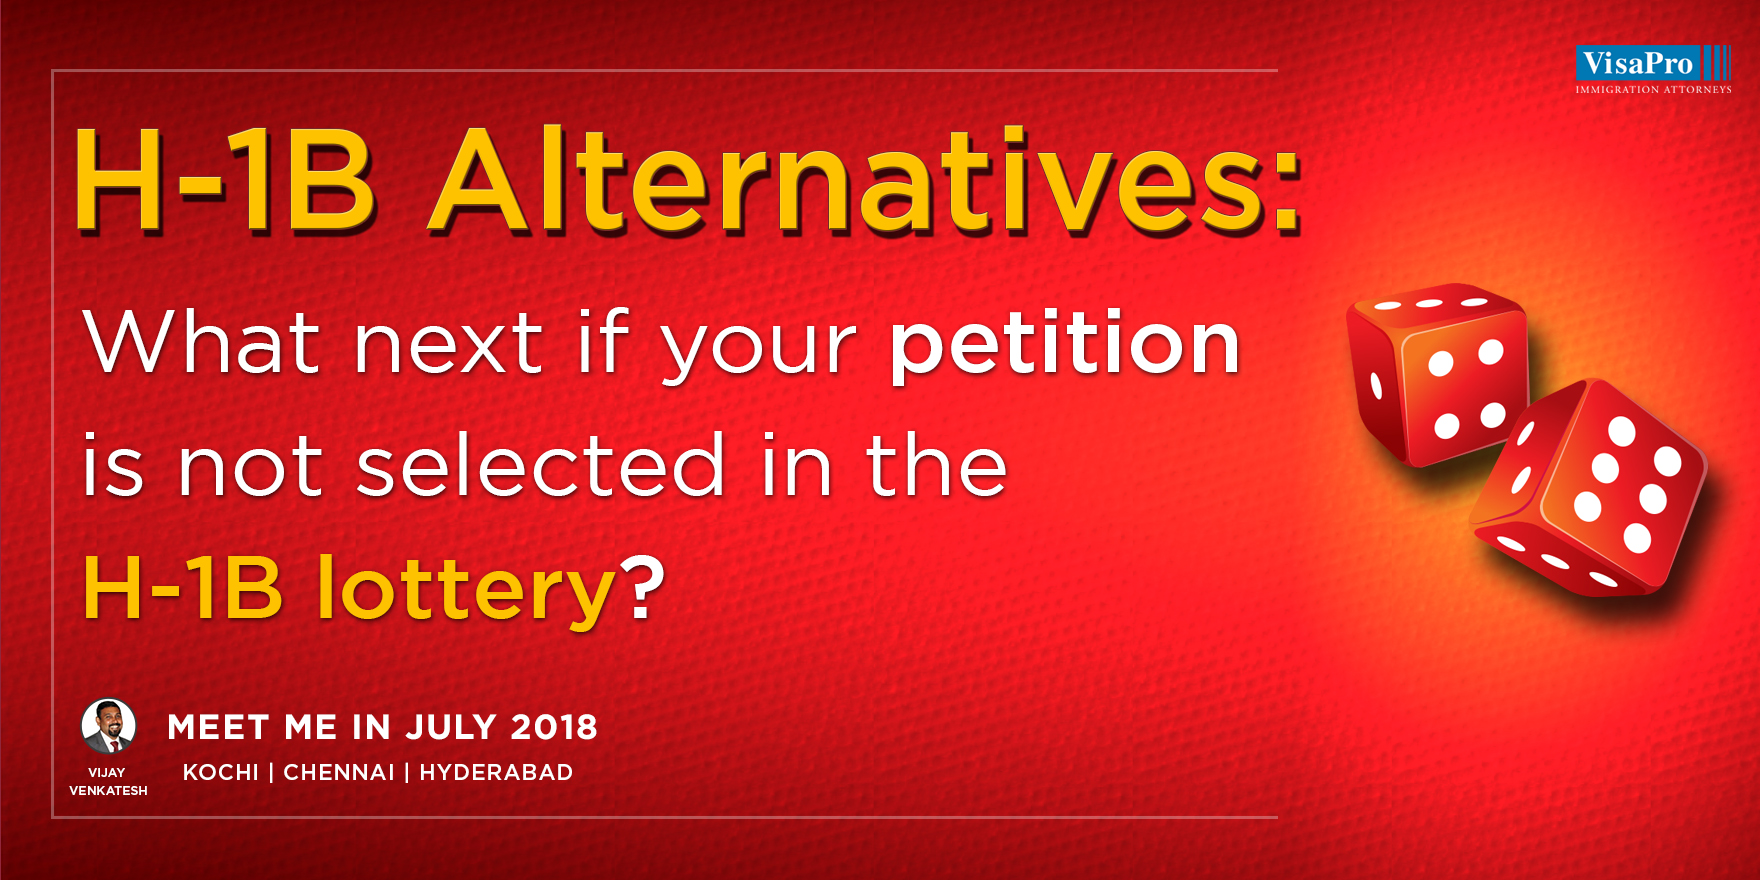 H-1B Alternatives: What Next If Your Petition Is Not Selected In The H-1B Lottery?, Chennai, Tamil Nadu, India